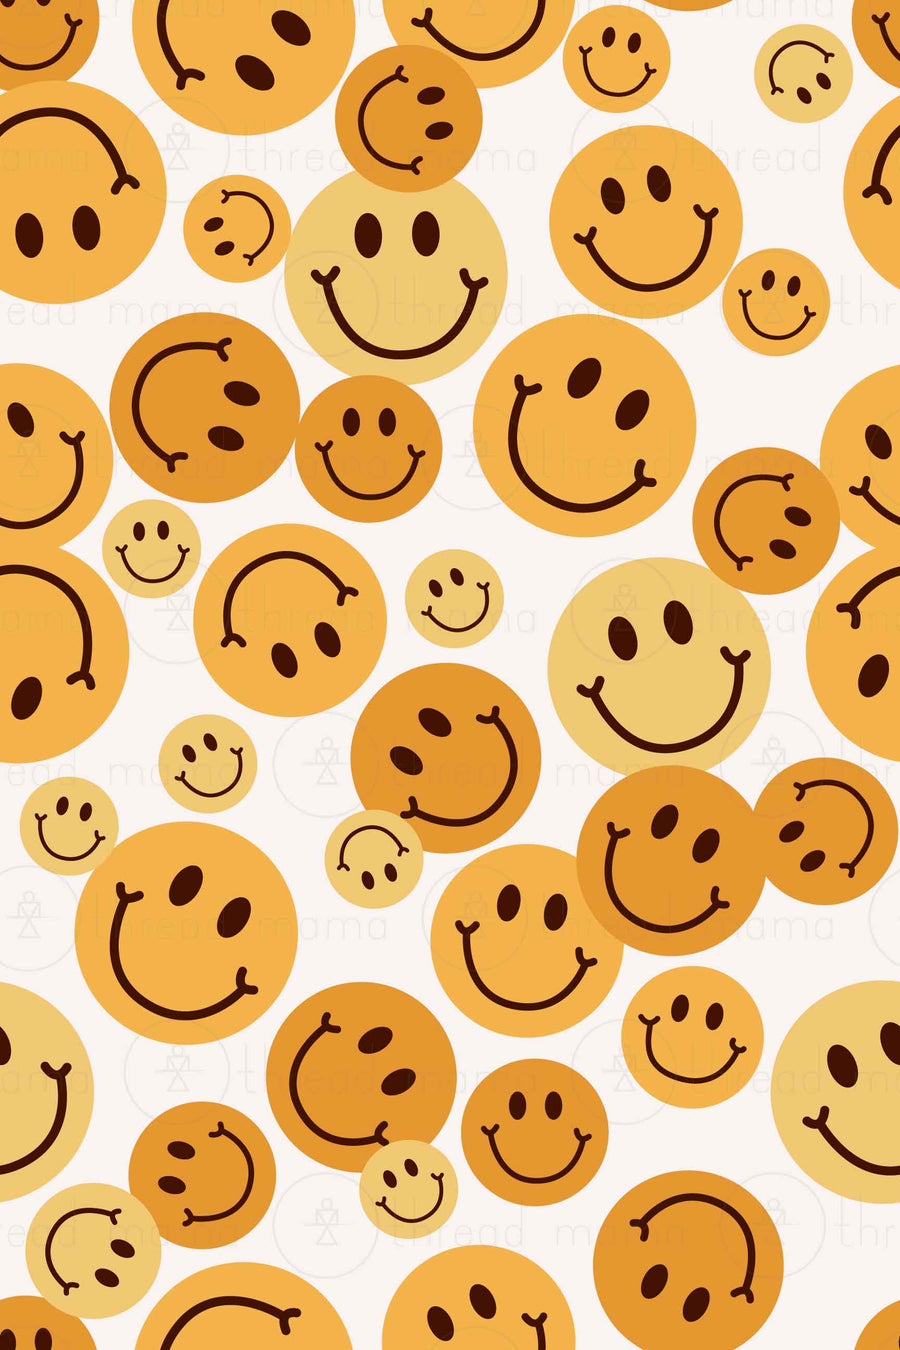 Smiley Face Collection (Background Patterns)